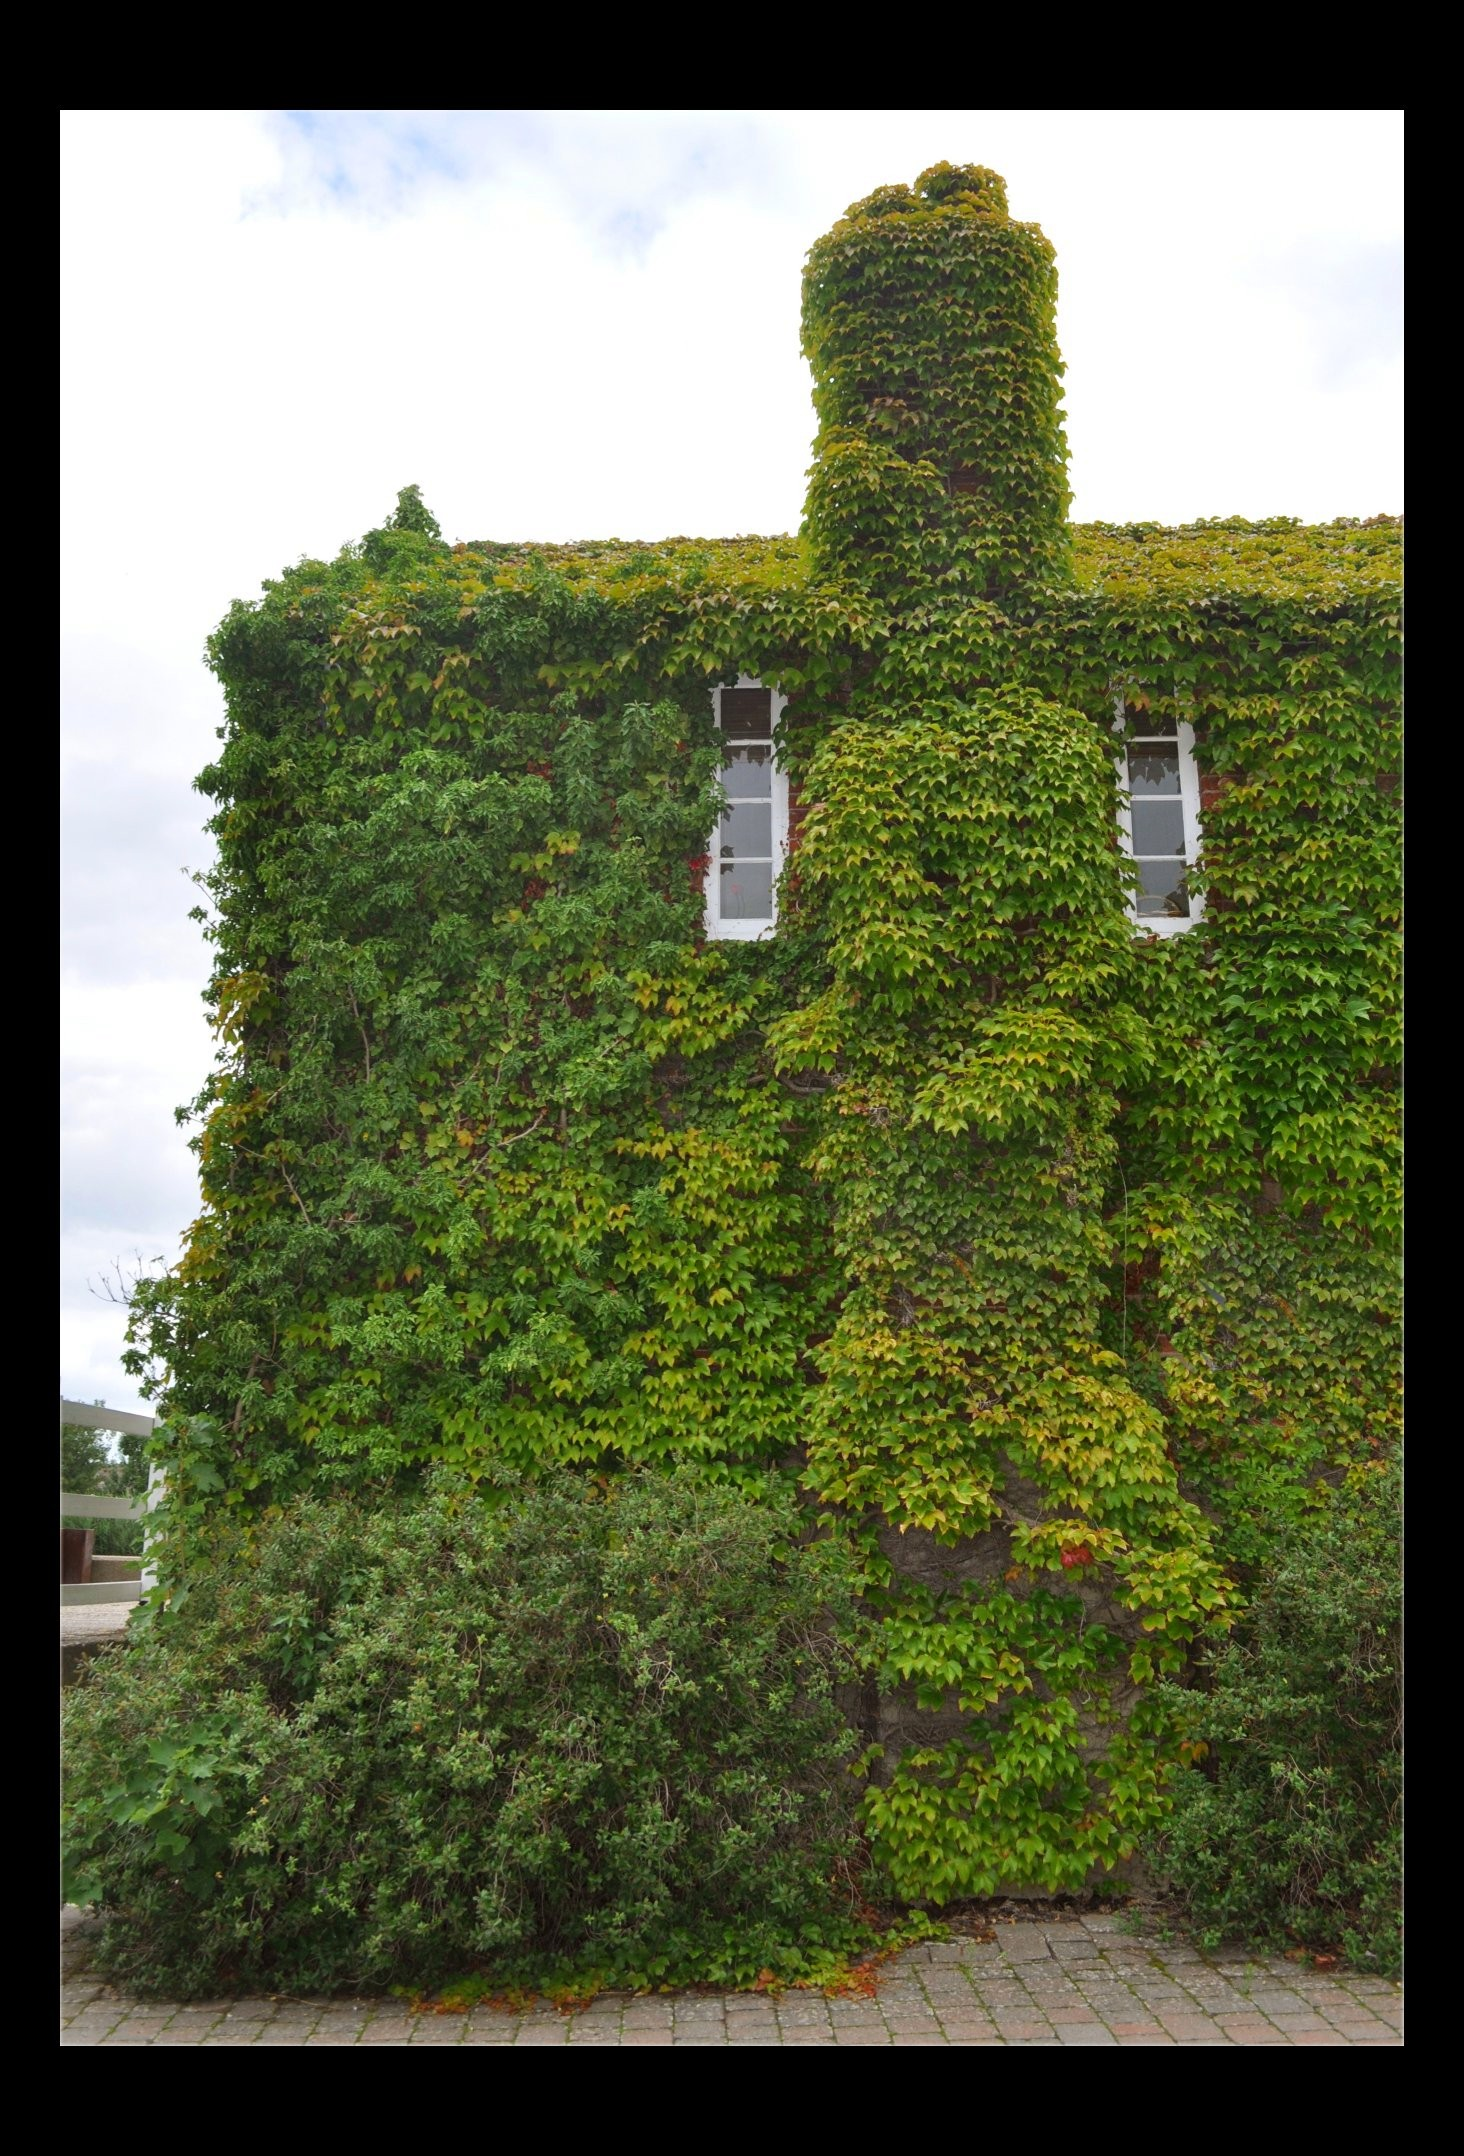 The ivy house by forestina fotos on deviantart for The ivy house